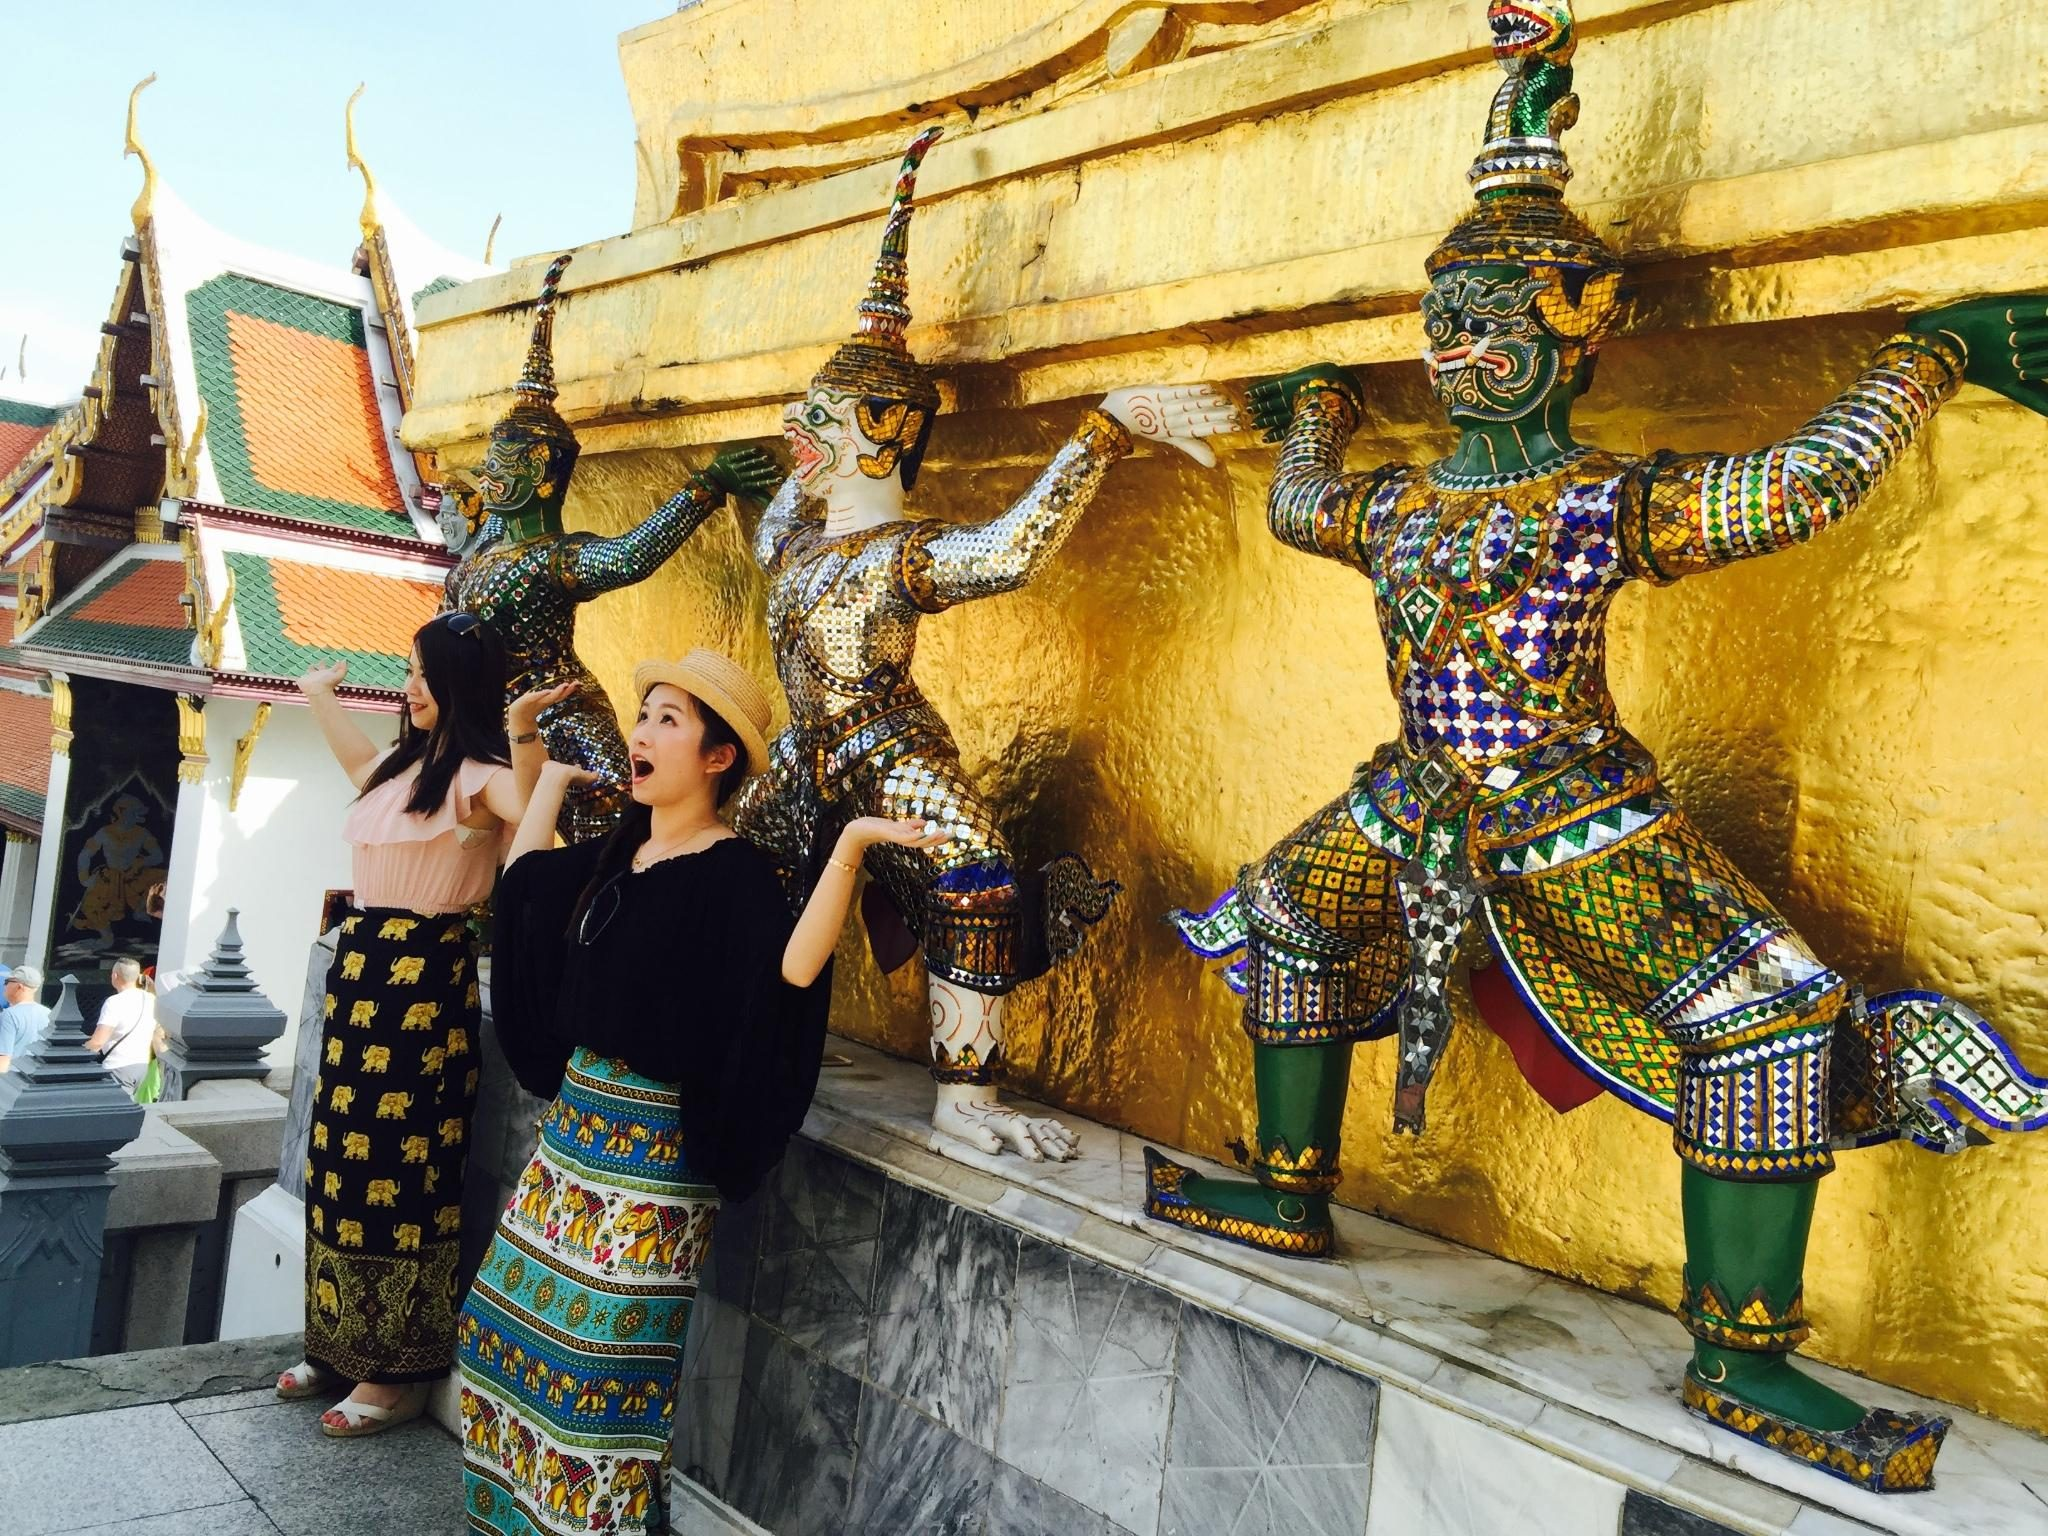 Why has Thailand been named the happiest country for three consecutive years?